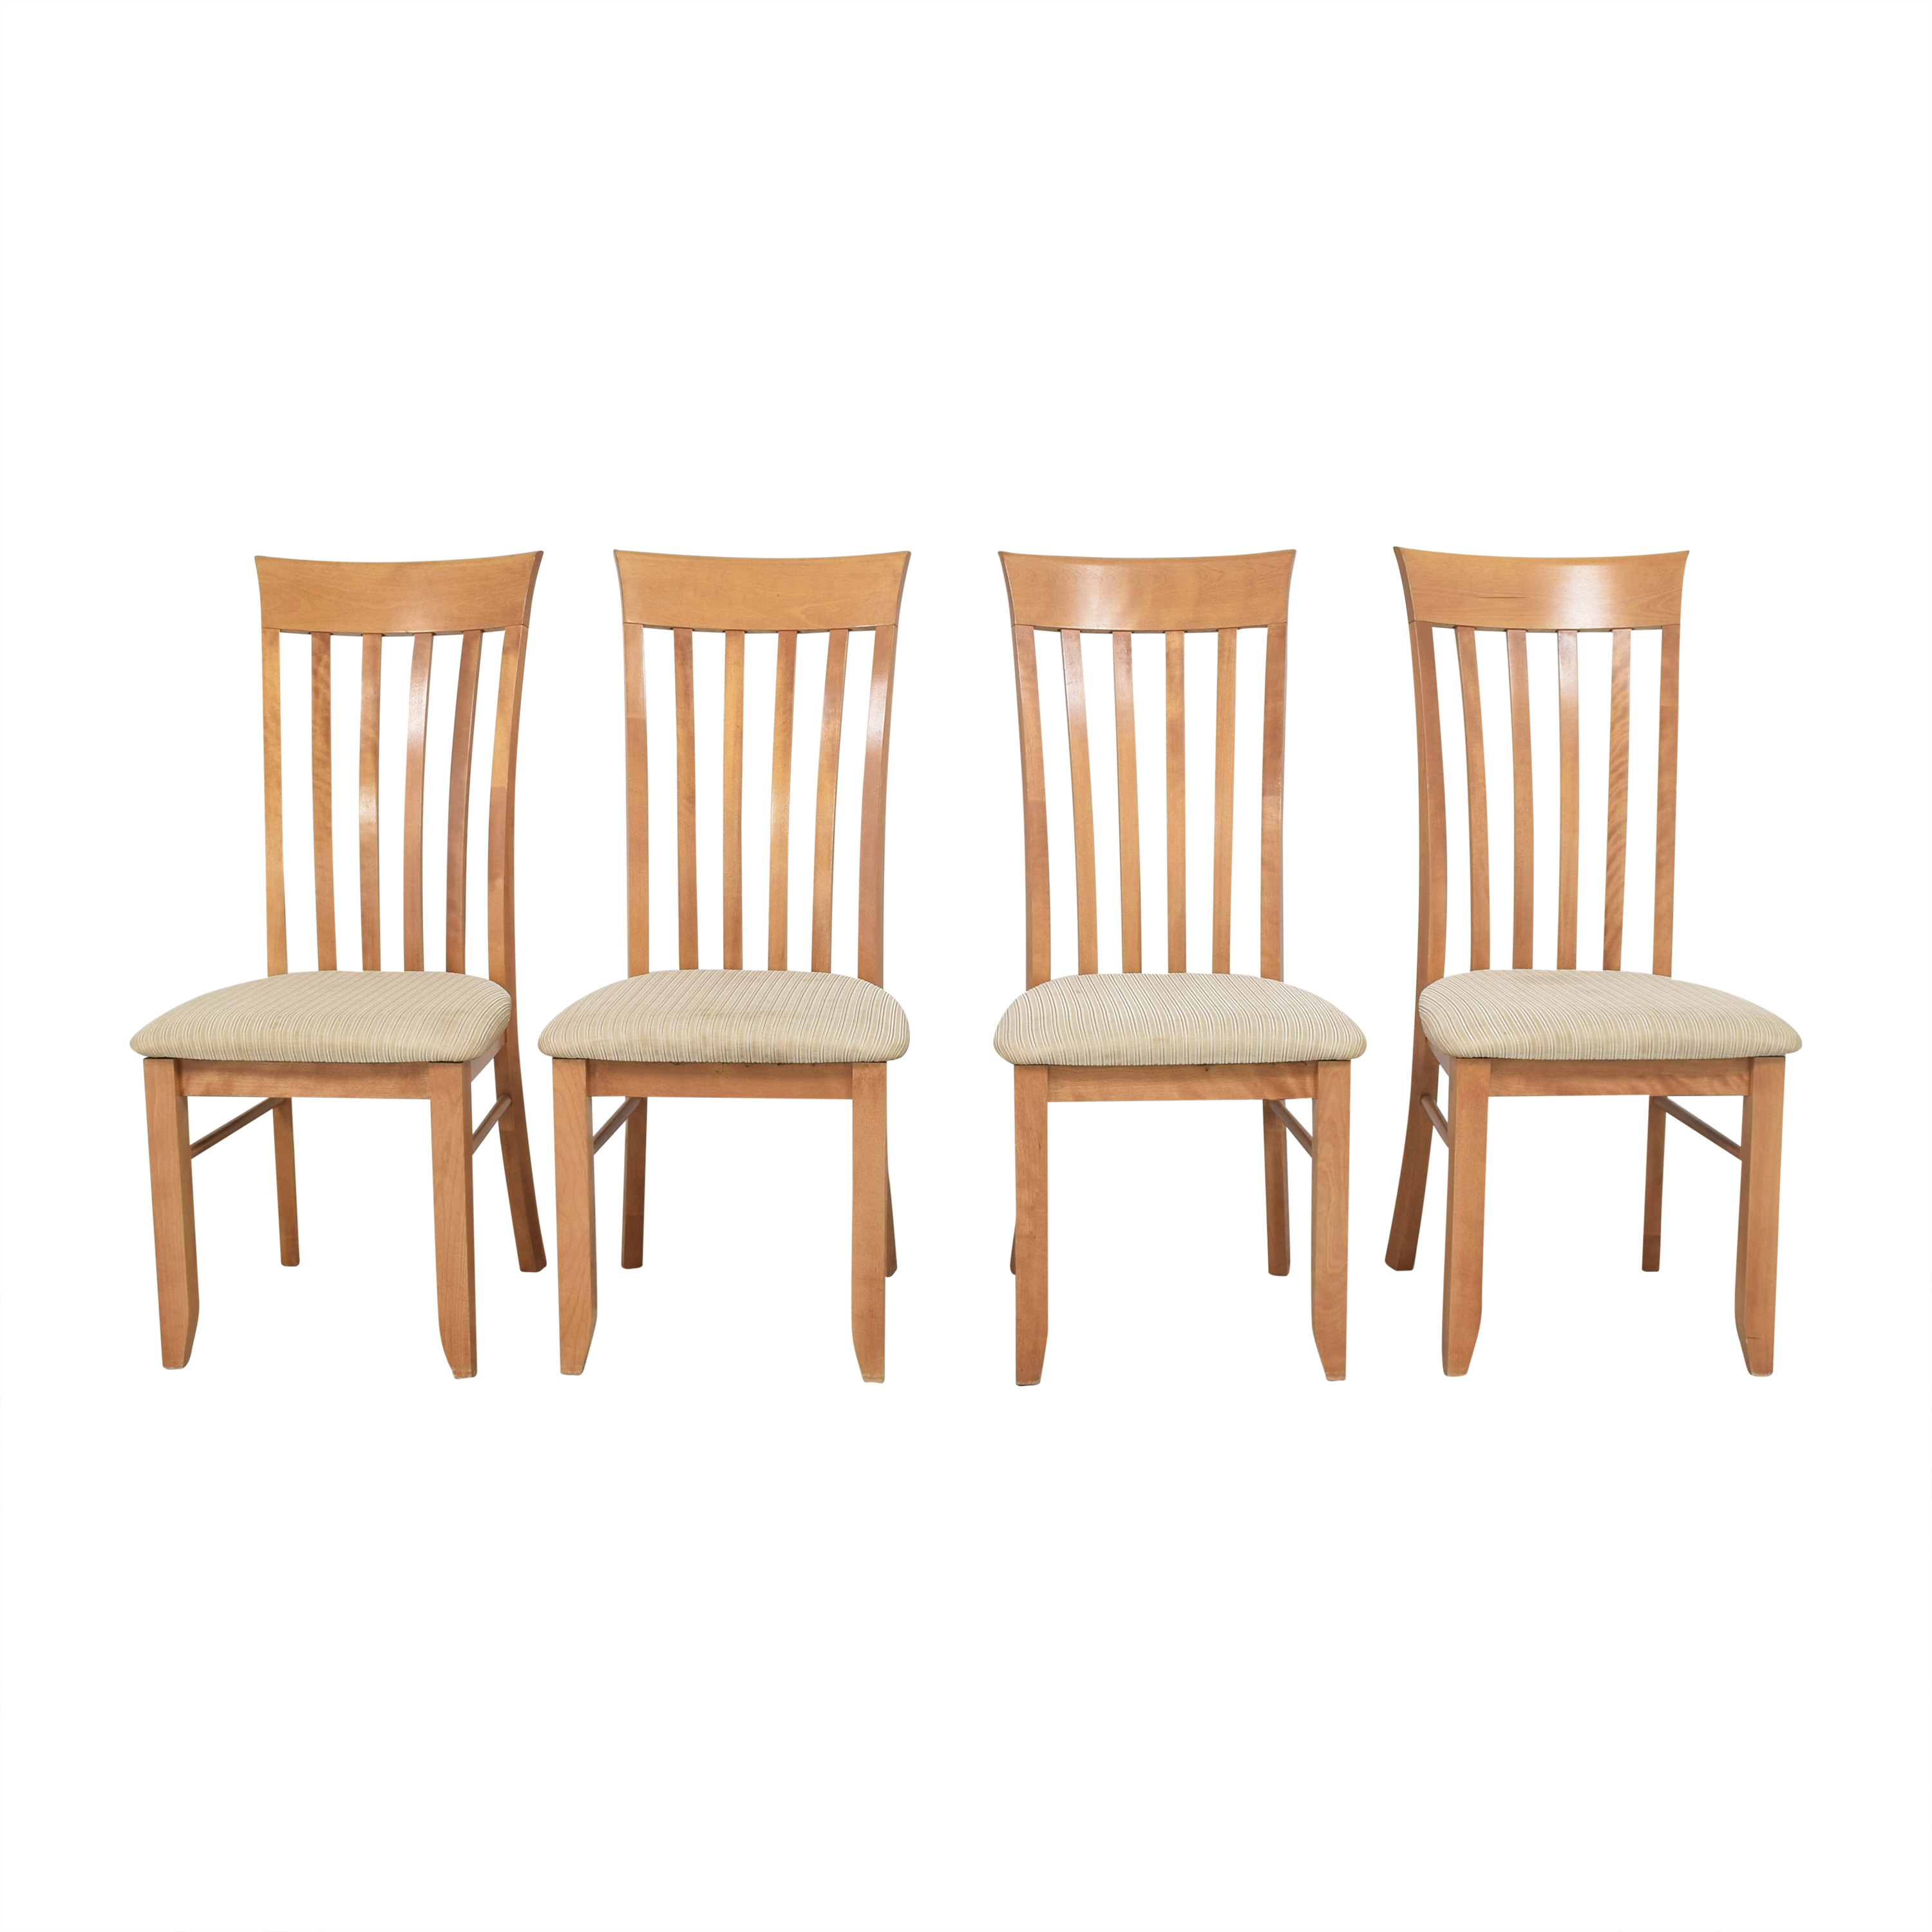 Canadel Canadel Upholstered Dining Chairs nyc